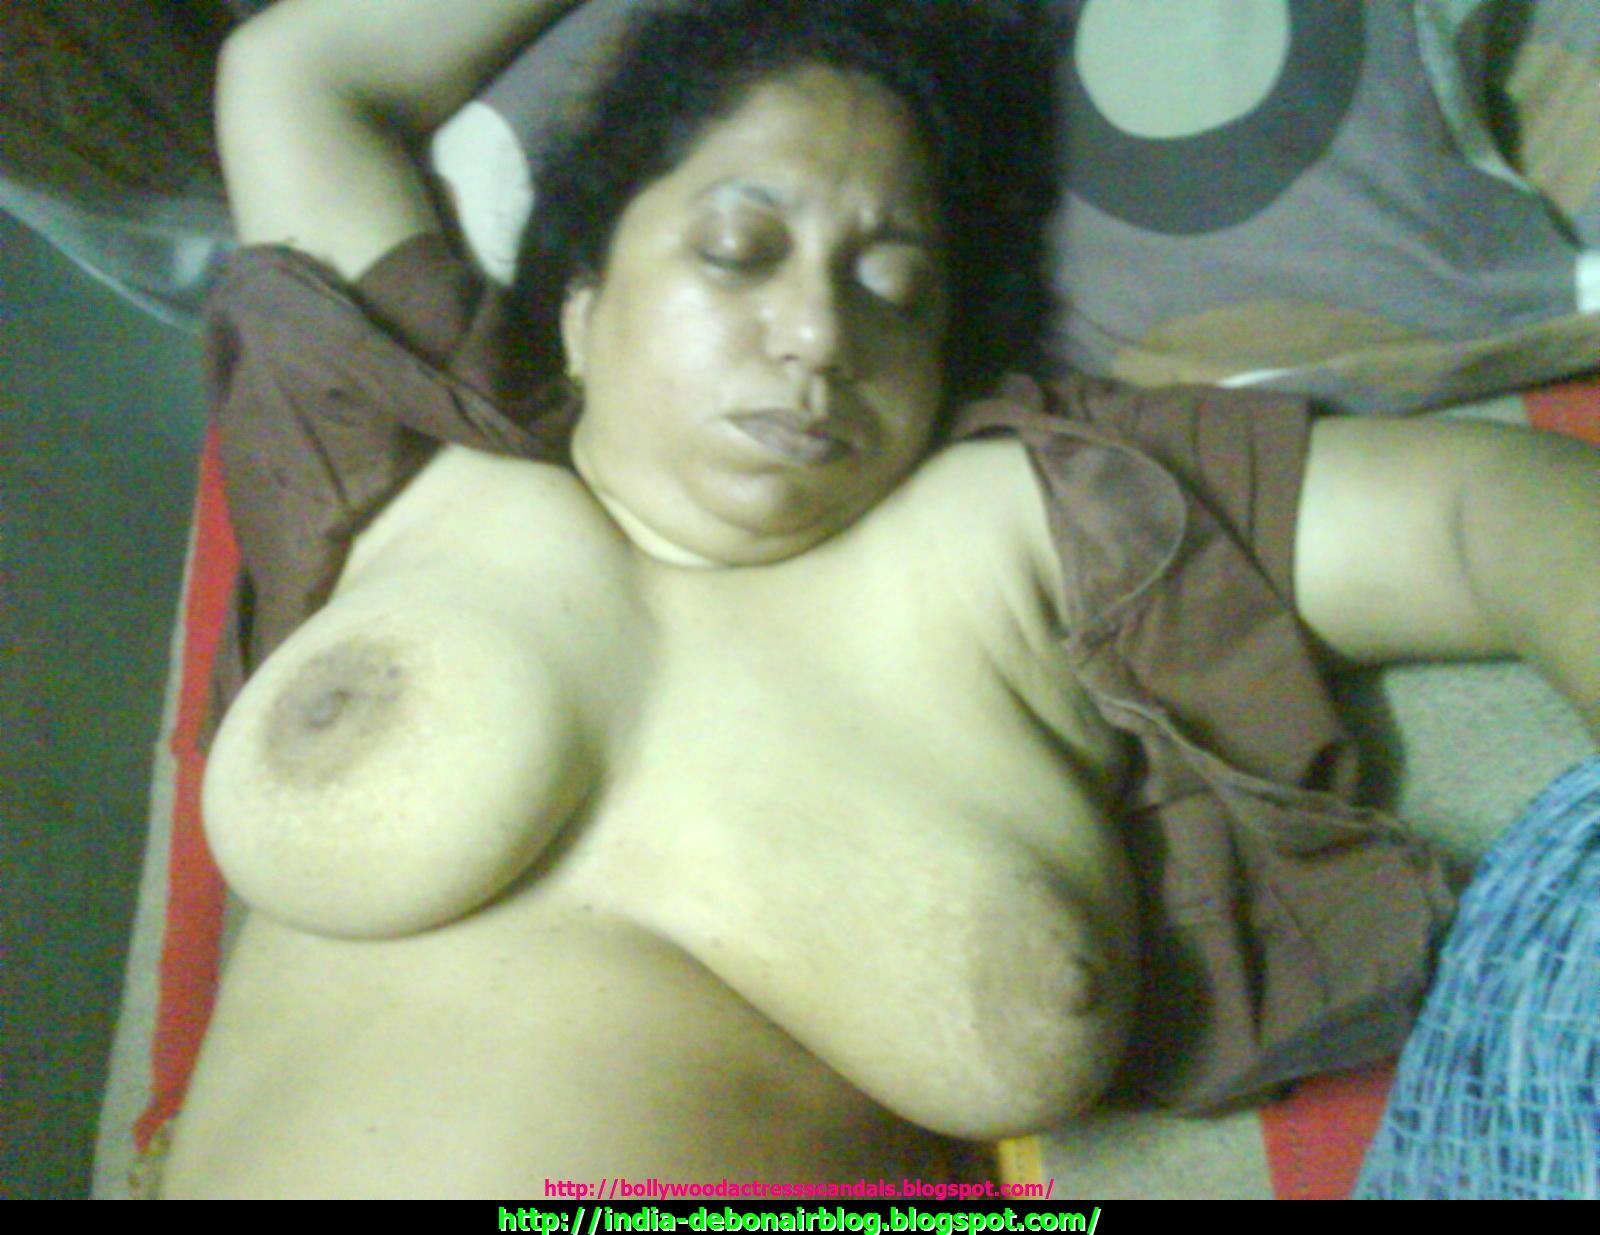 fat girl have sex in beach nude photos